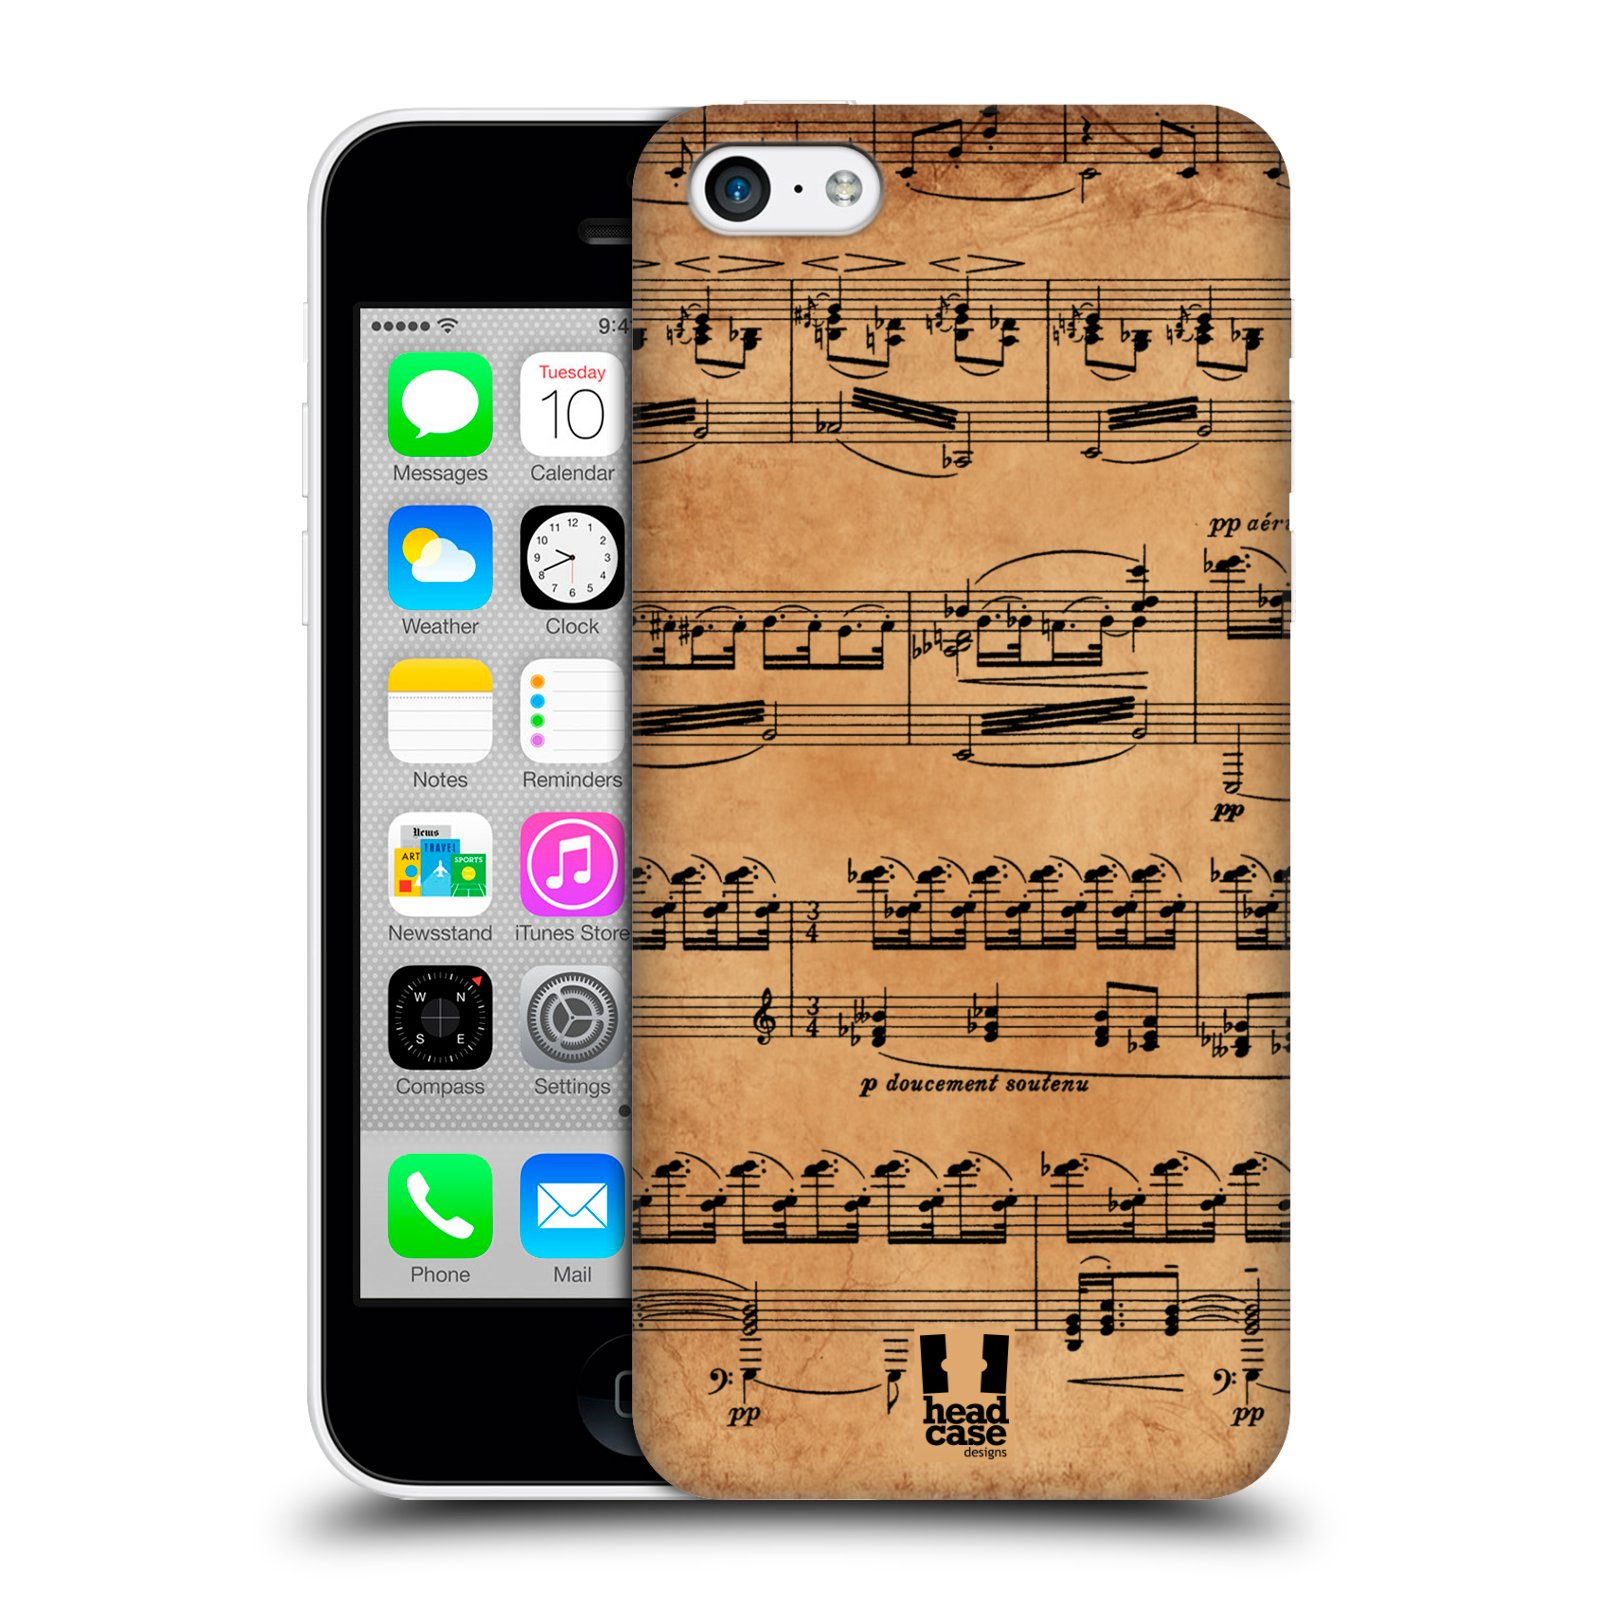 HEAD-CASE-DESIGNS-MUSIC-SHEETS-PROTECTIVE-BACK-CASE-COVER-FOR-APPLE-iPHONE-5C